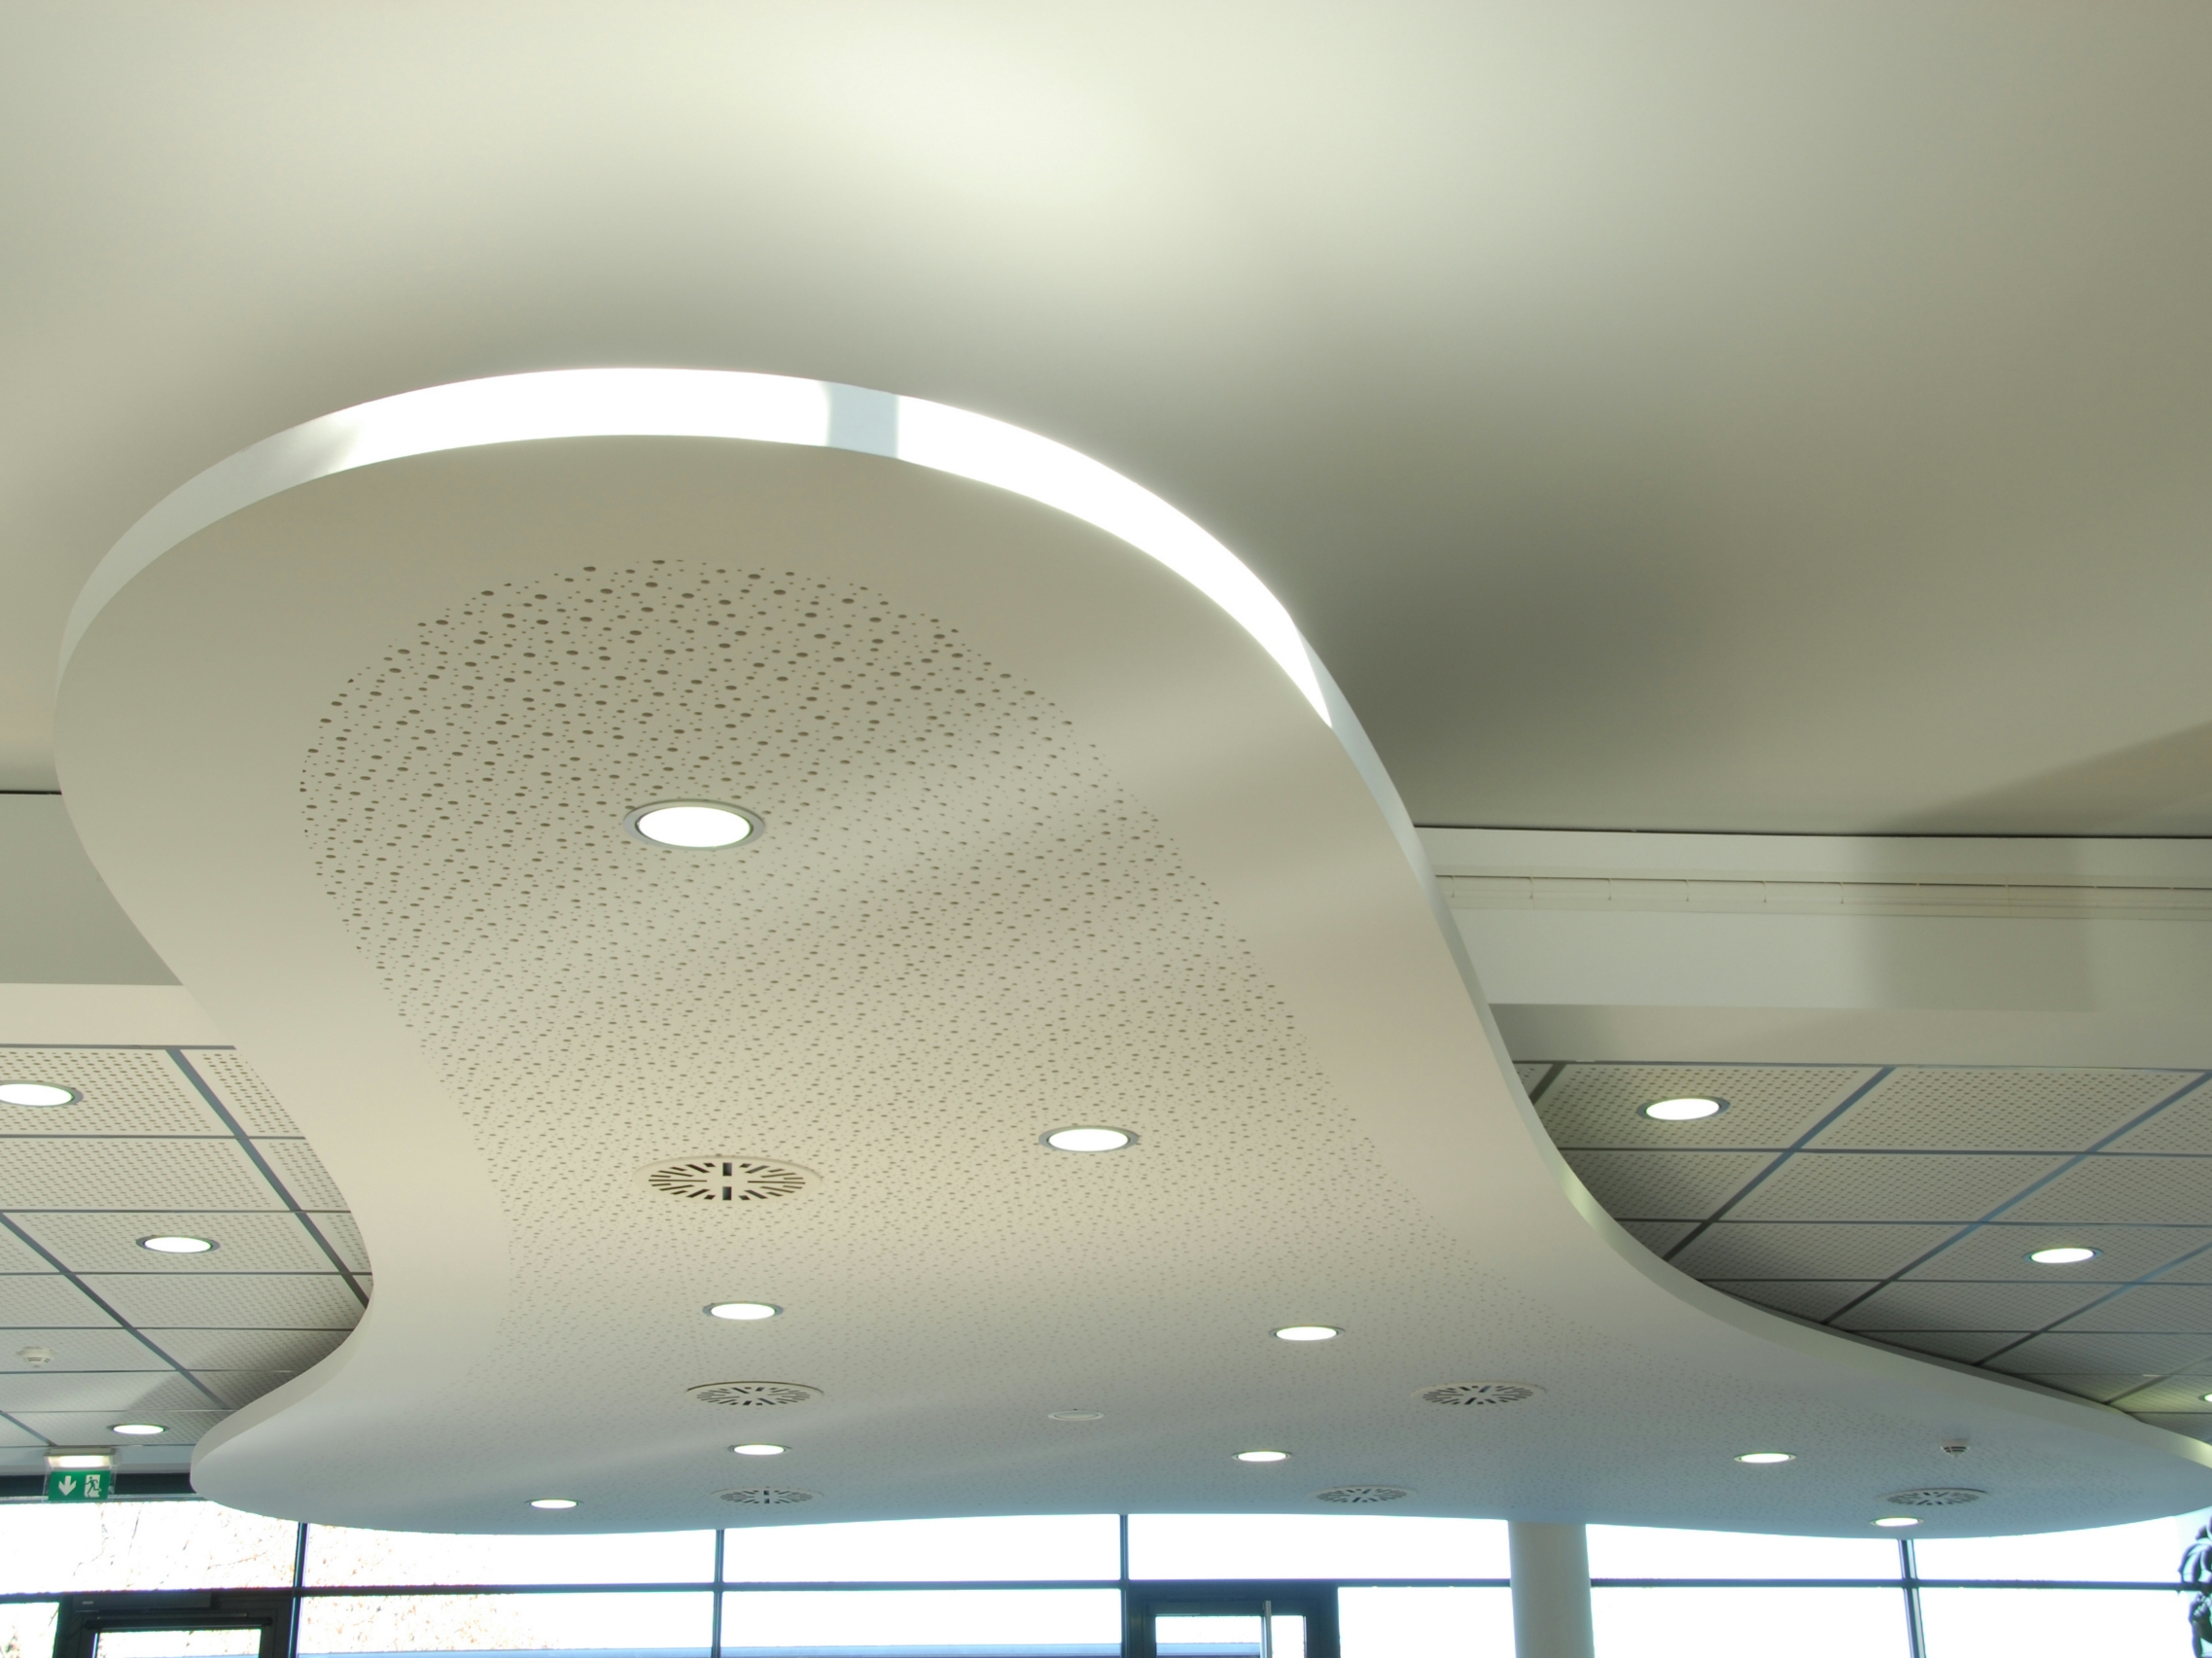 Faux plafond acoustique en placo lastra sf 6 18f by fibran for Plafond combles placo